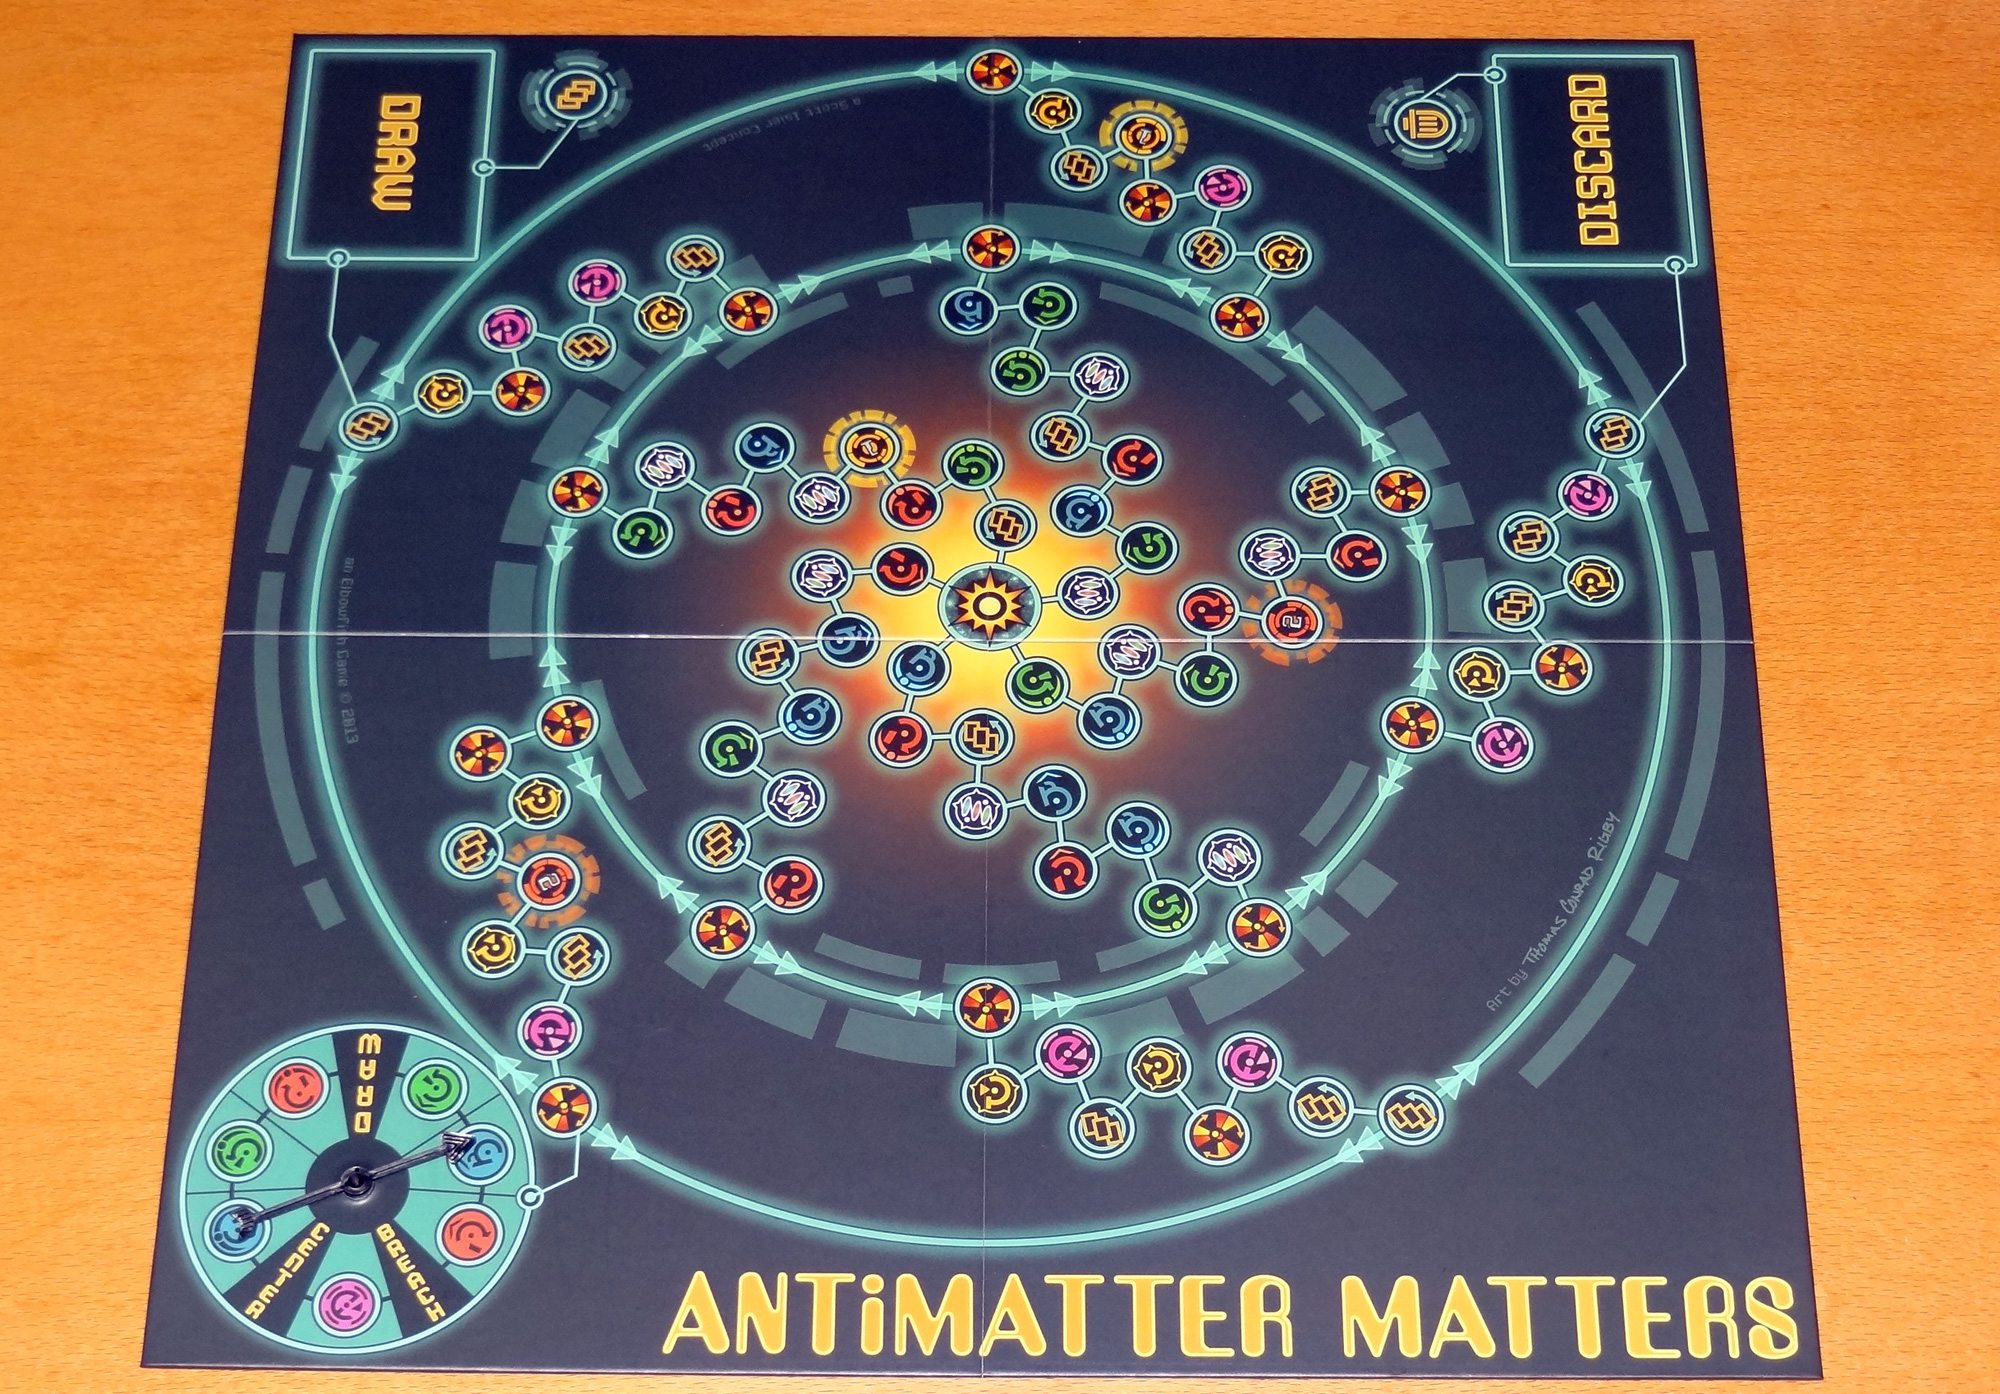 Antimatter Matters board